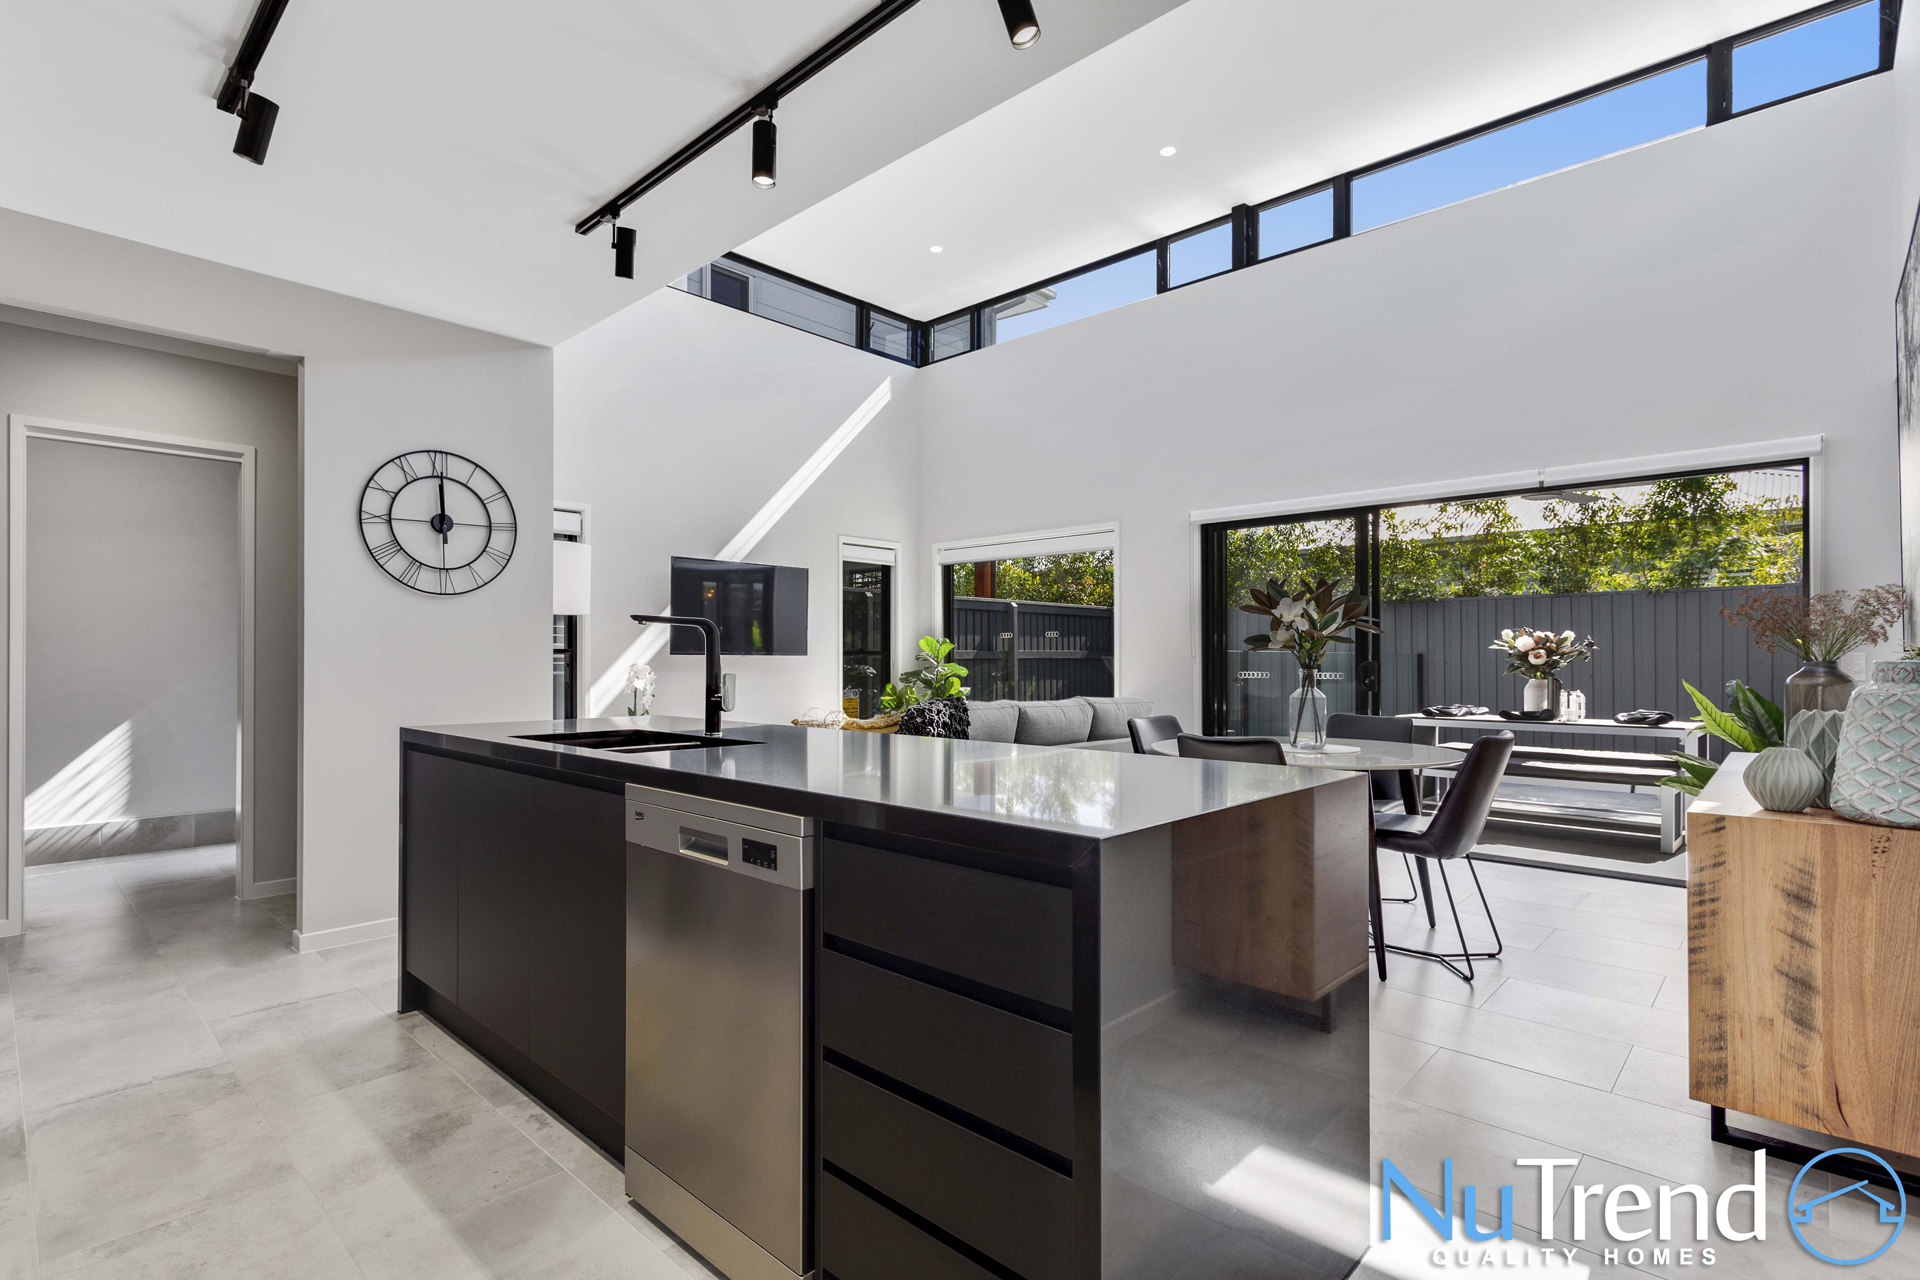 NEW LUXURY, STYLISH AND SPACIOUS HOME